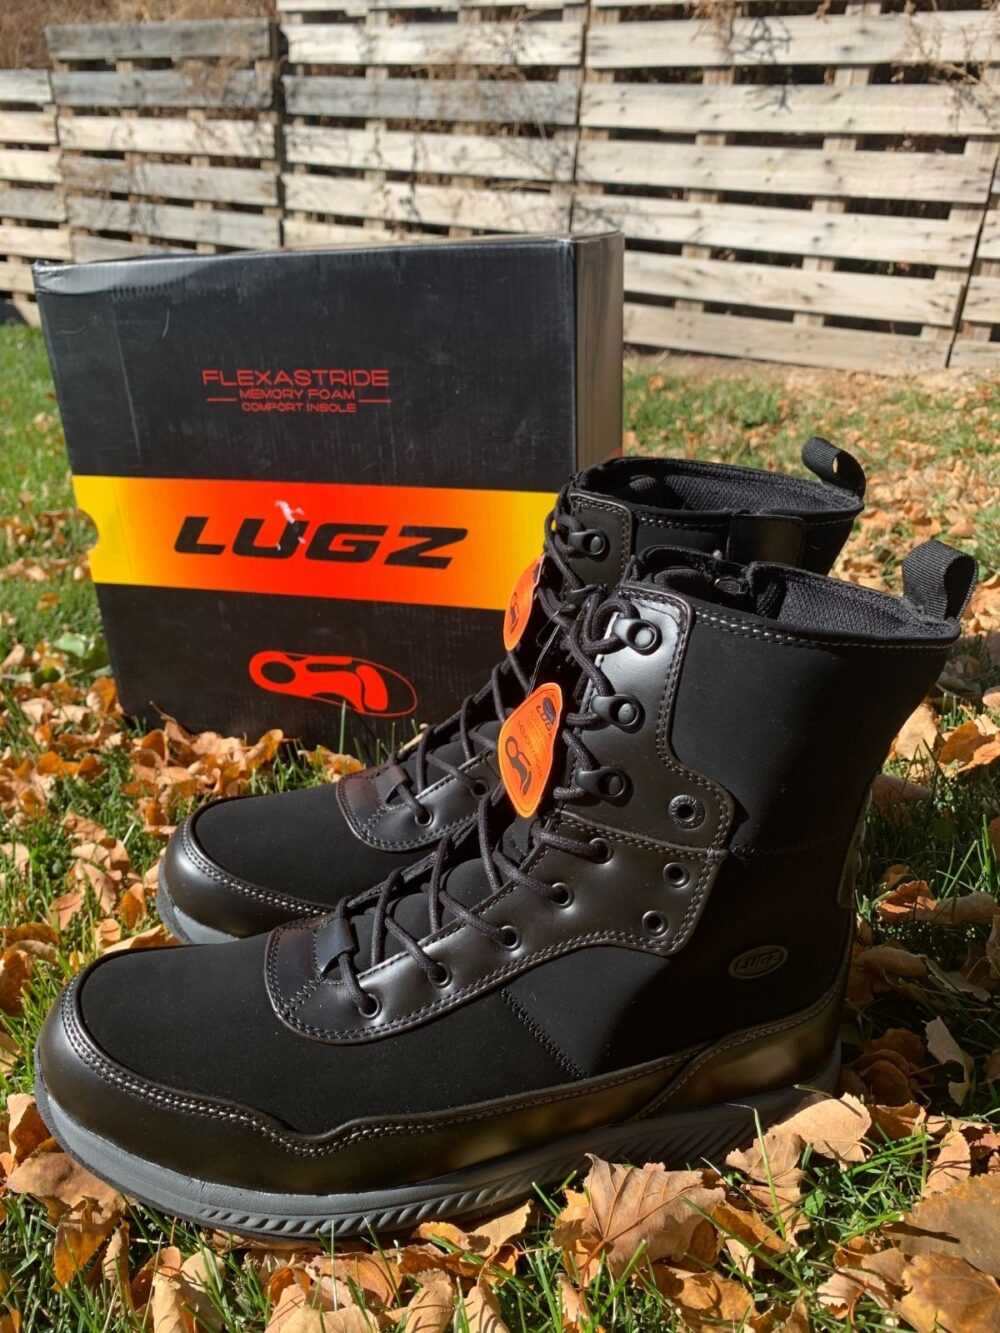 Lugz Work Boots without Steel Toes - Powered by Mom